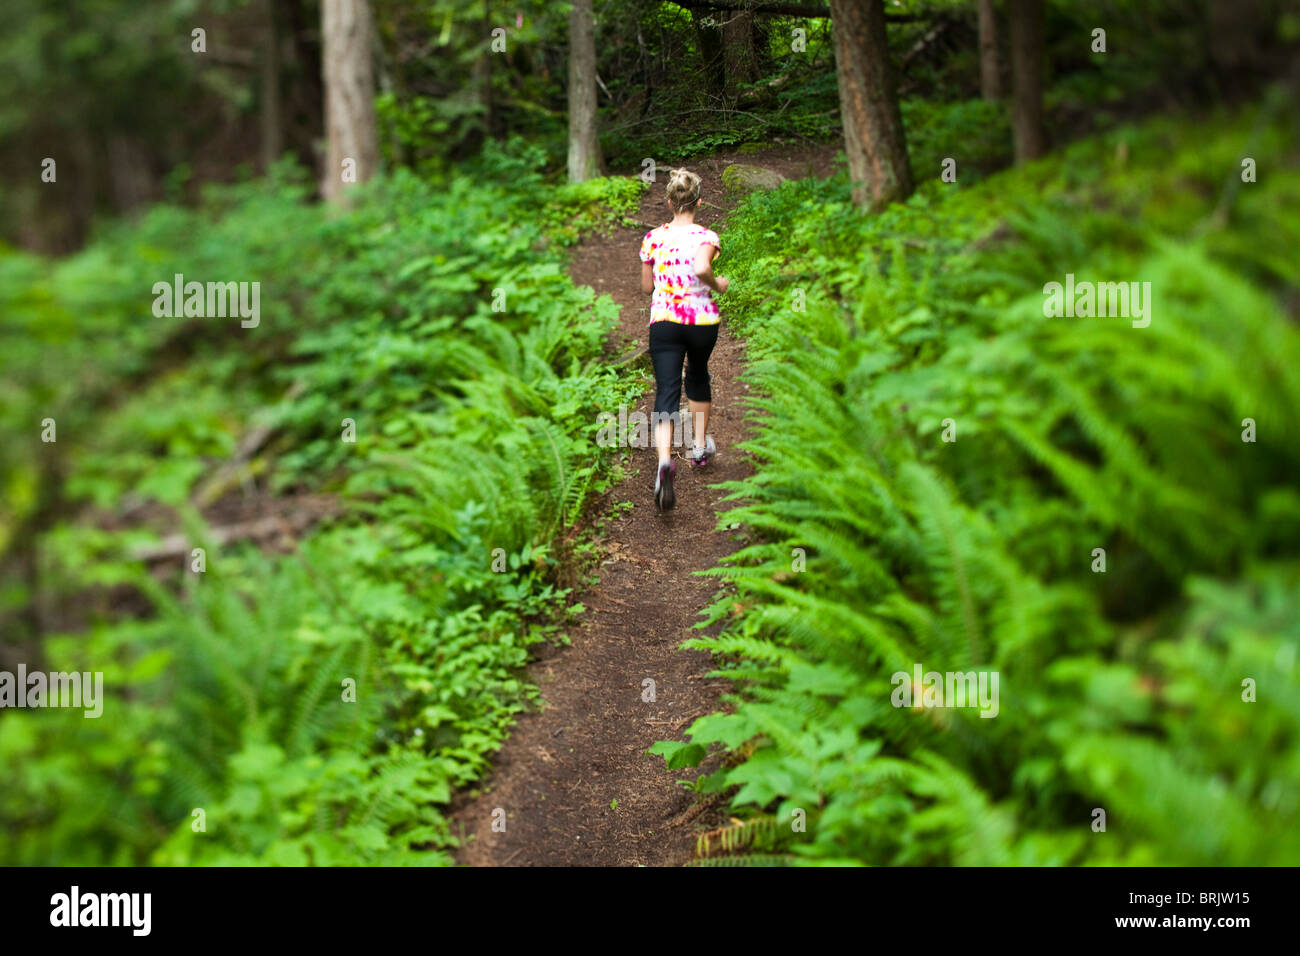 Young woman trail running through a field of lush green ferns. - Stock Image